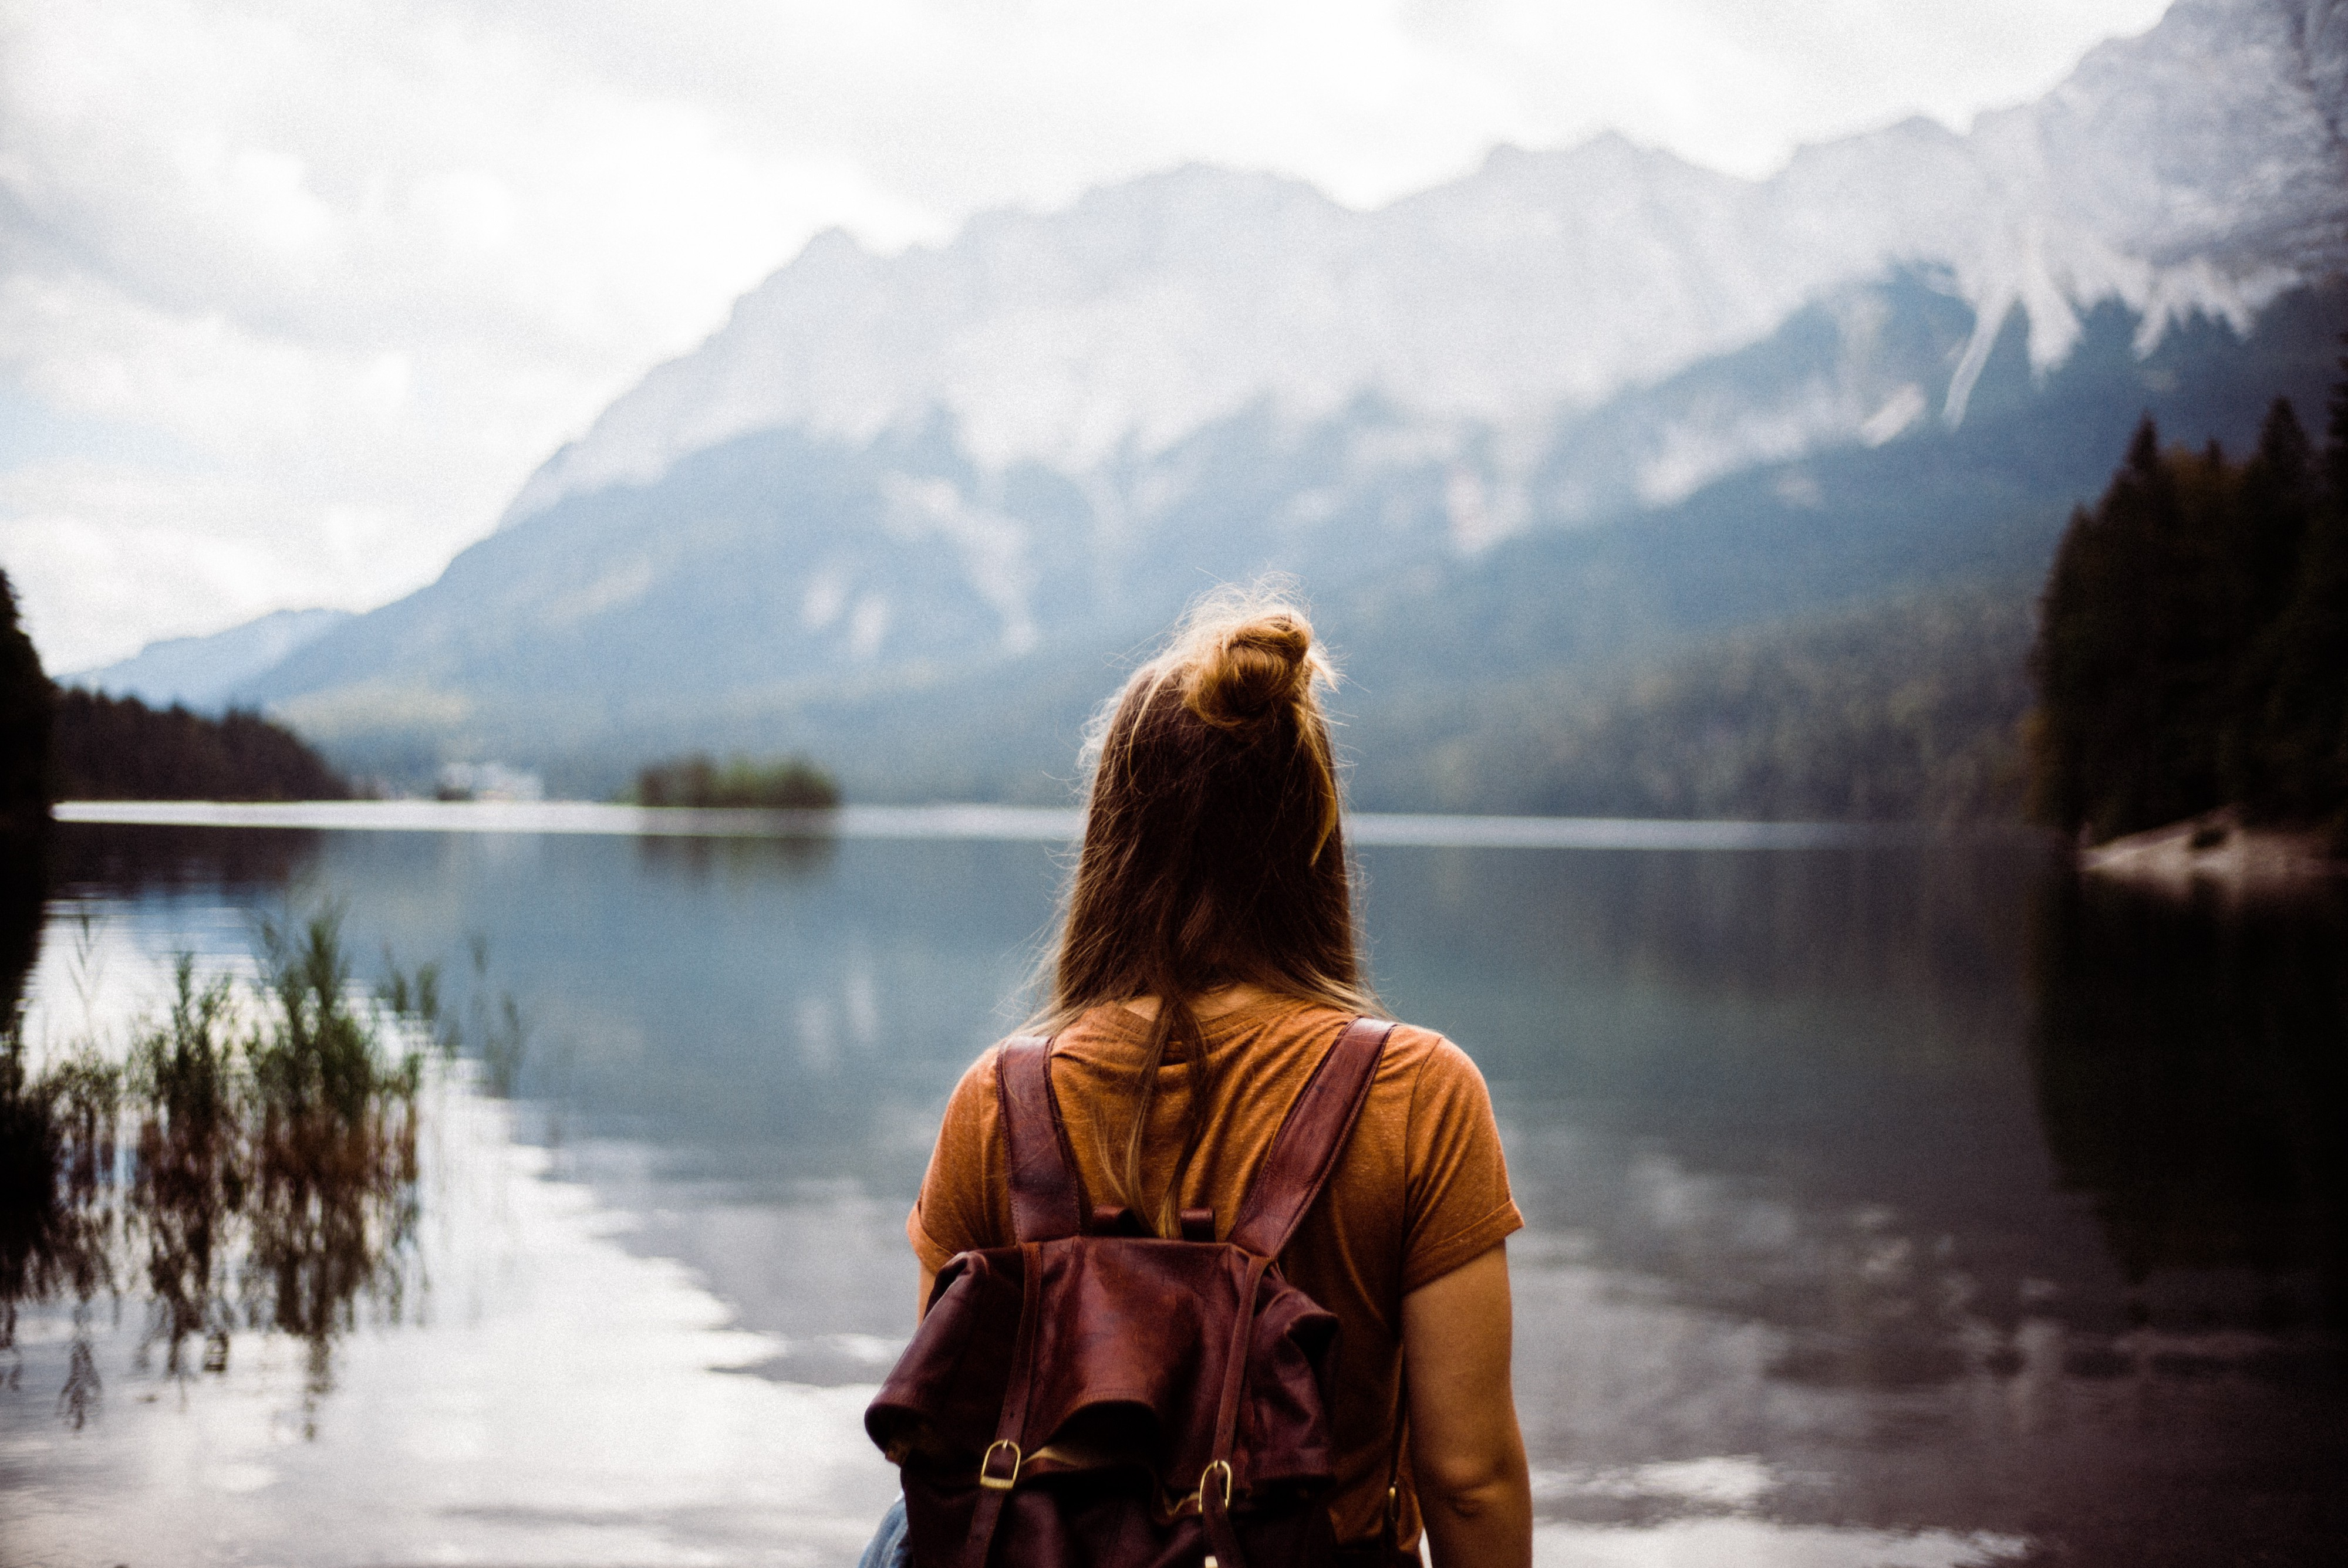 a lady by mountain journey